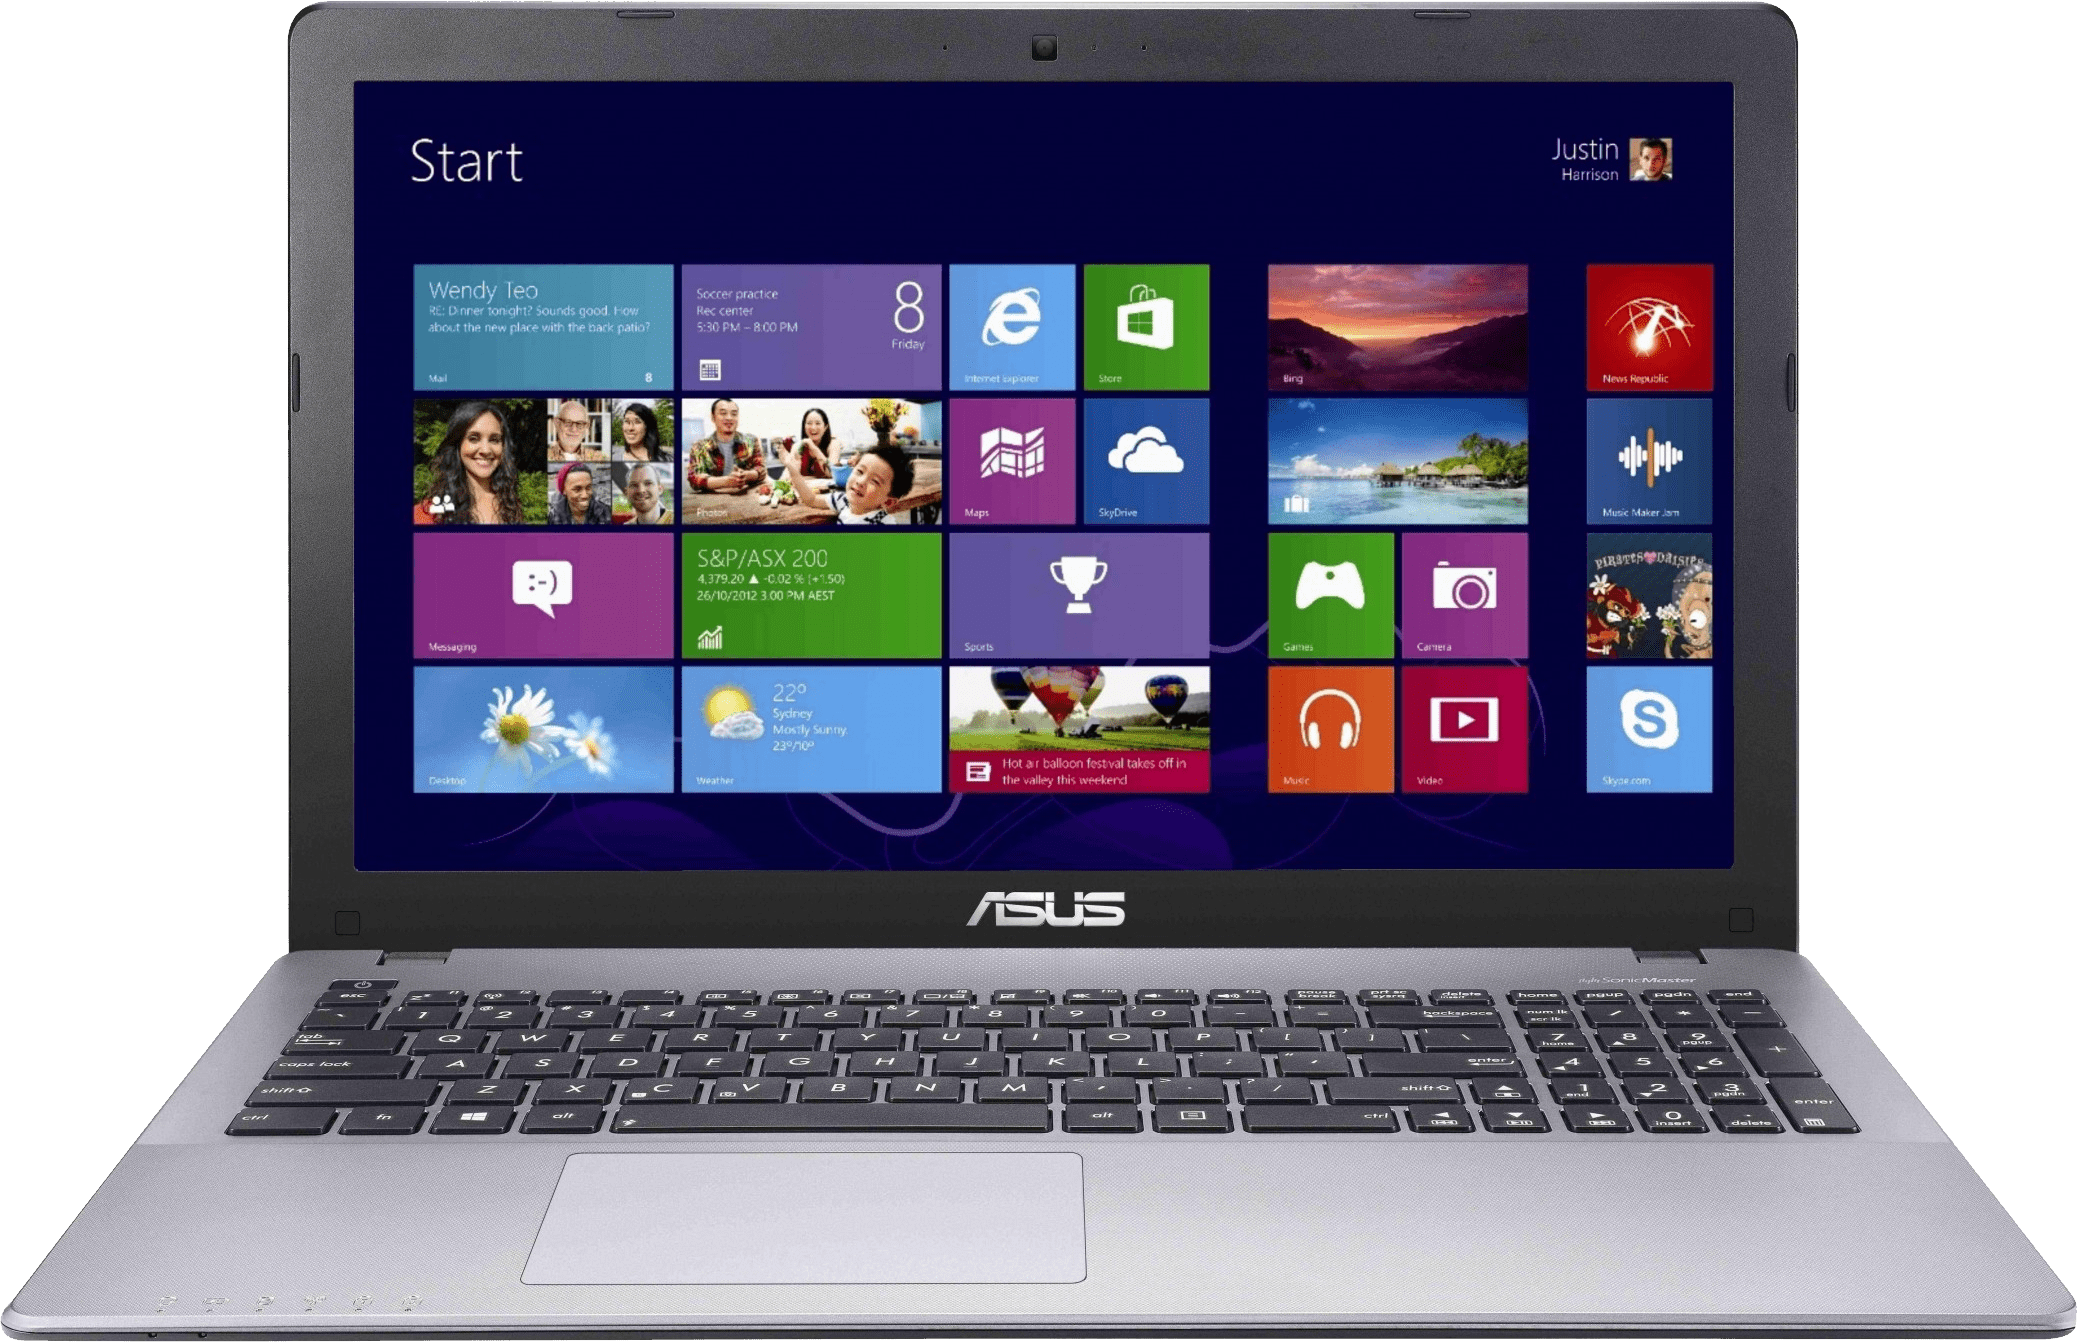 Laptop Asus Dengan OS Windows 8.1